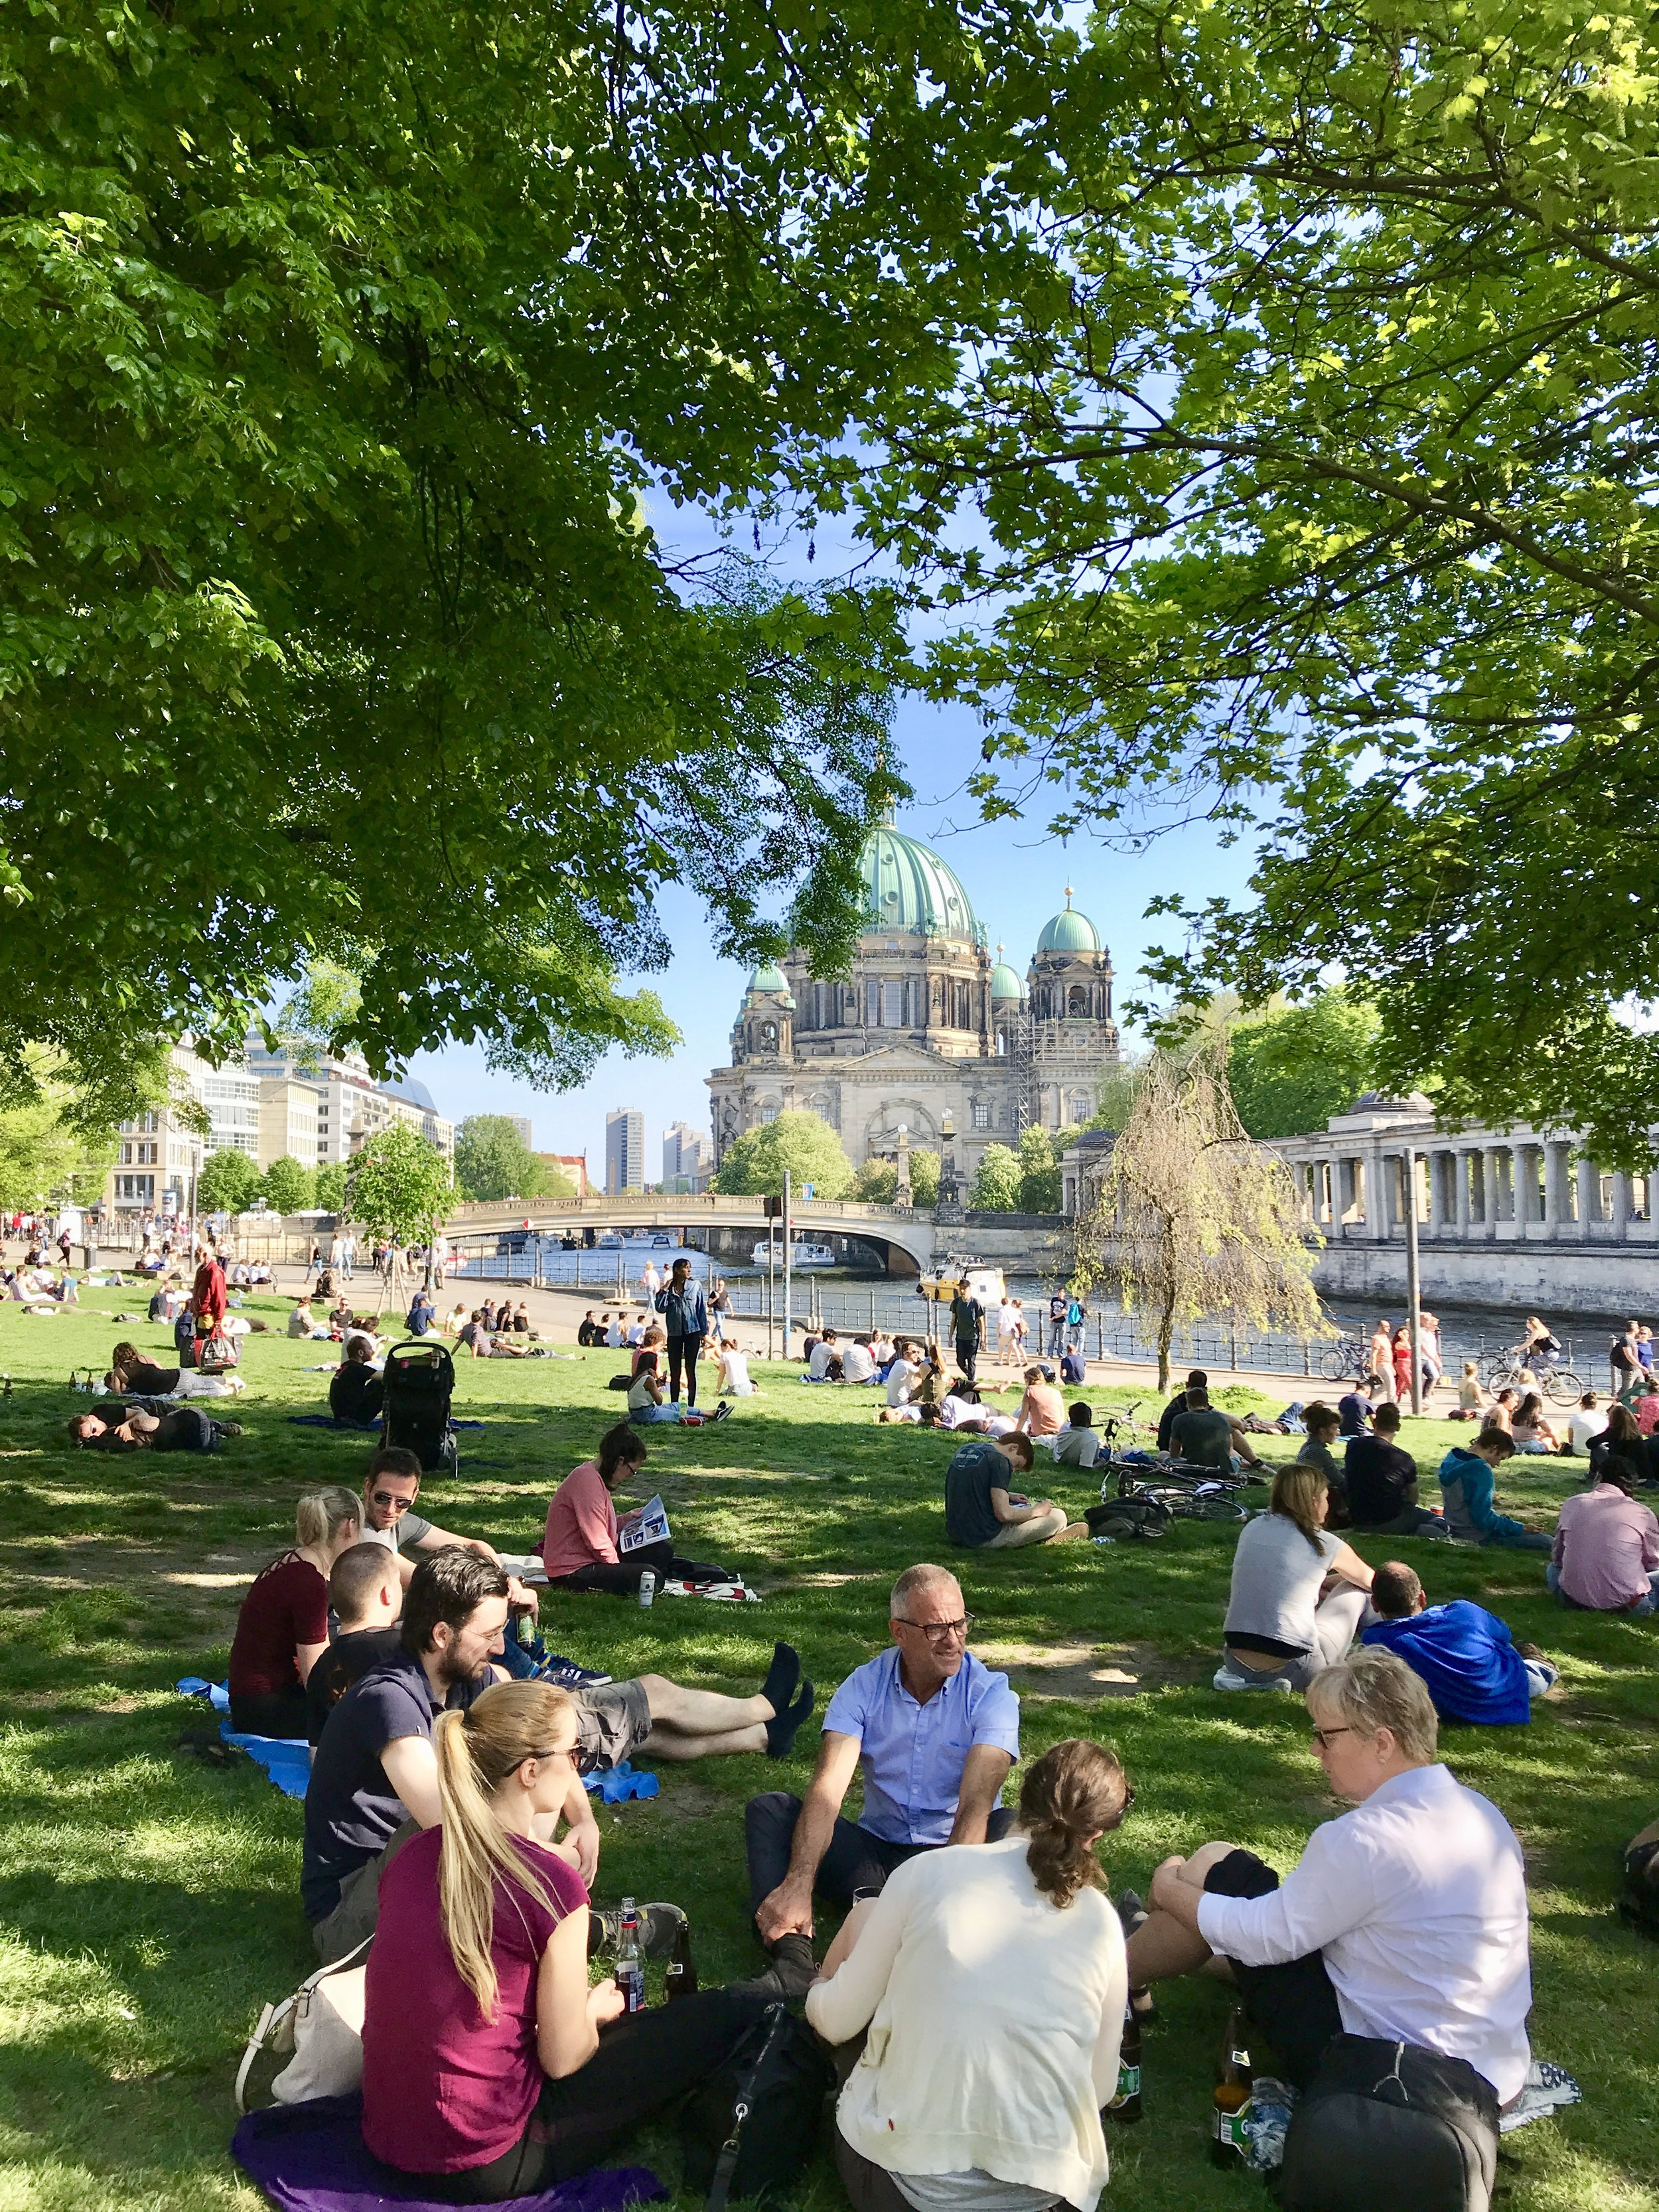 When you're done exploring Museum Island, come chill in James Simon Park.